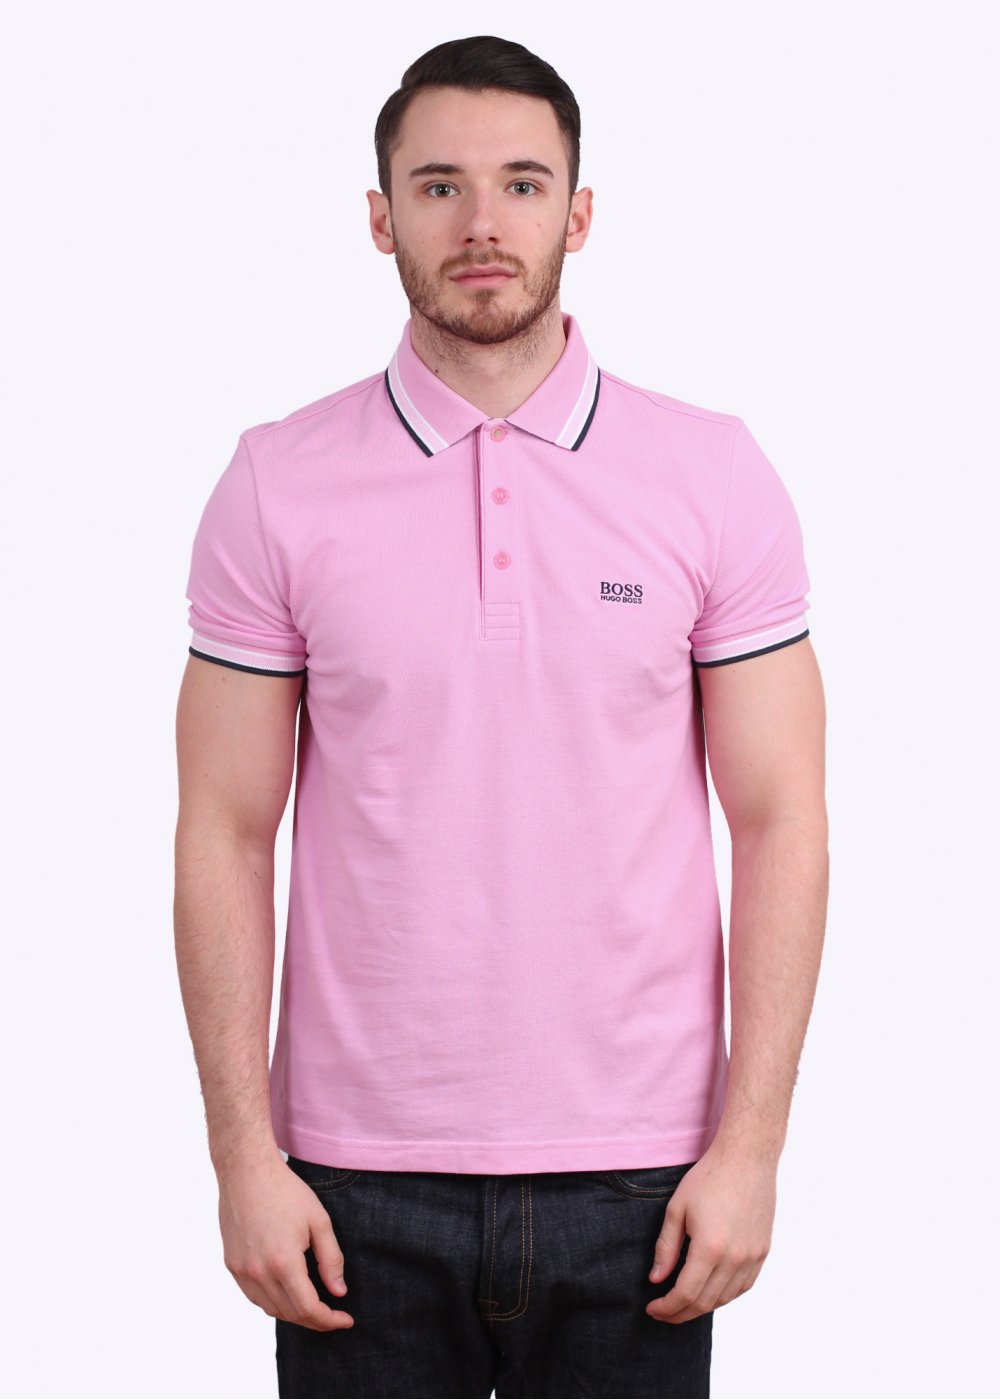 712d81cdd Hugo Boss Green Paddy Polo Shirt - Light Pink